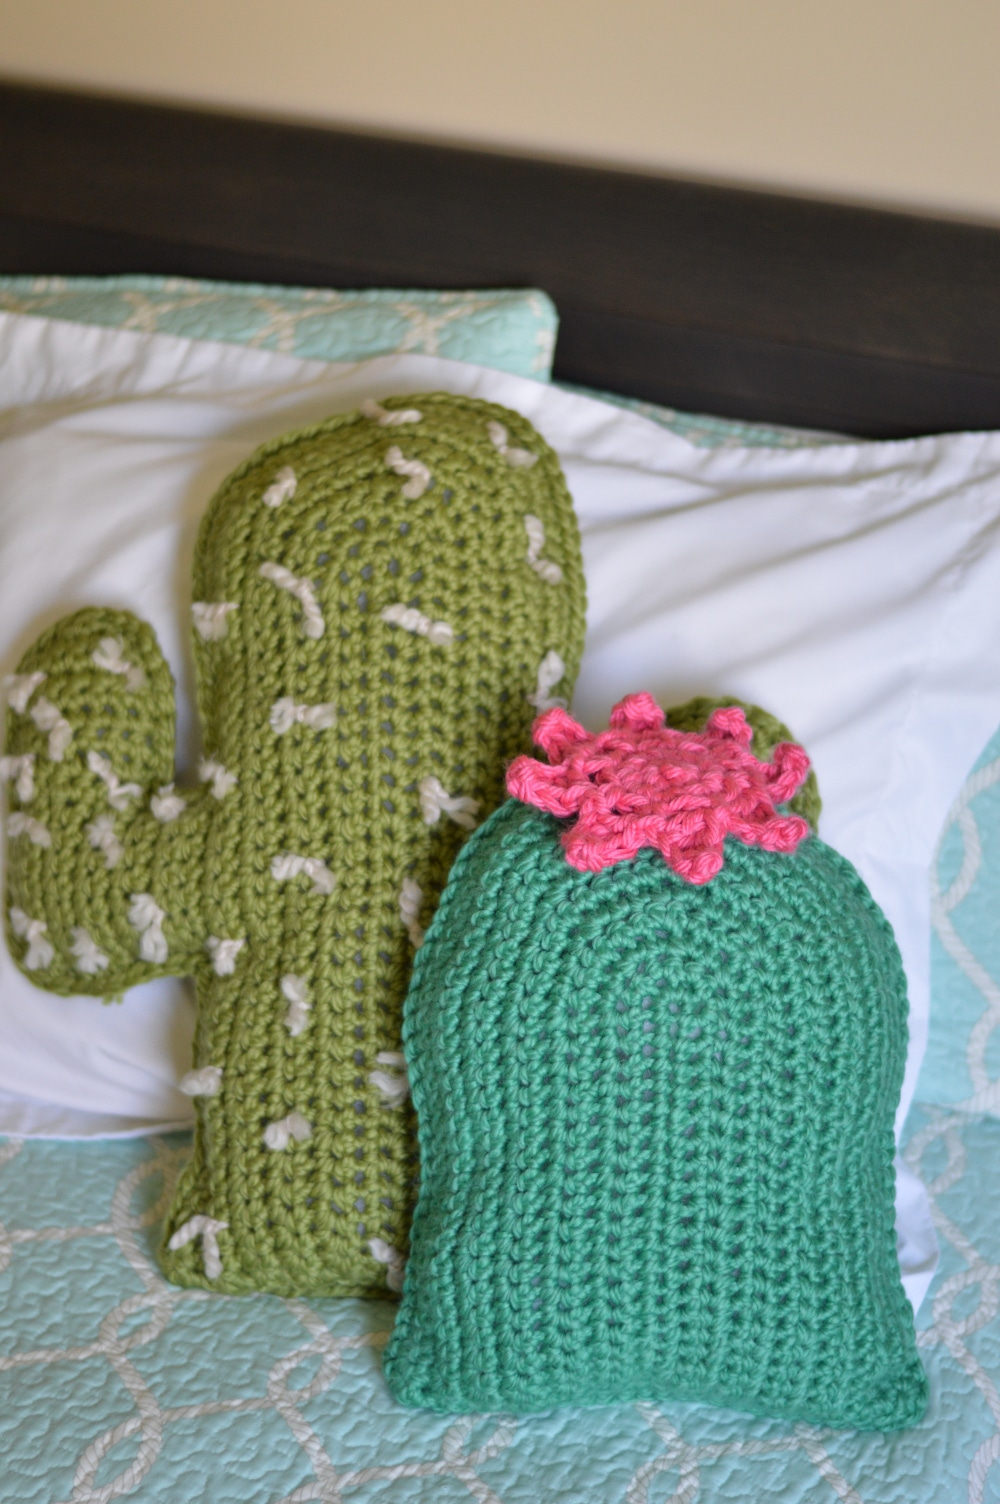 Crochet cactus pillows free crochet pattern whistle and ivy izmirmasajfo